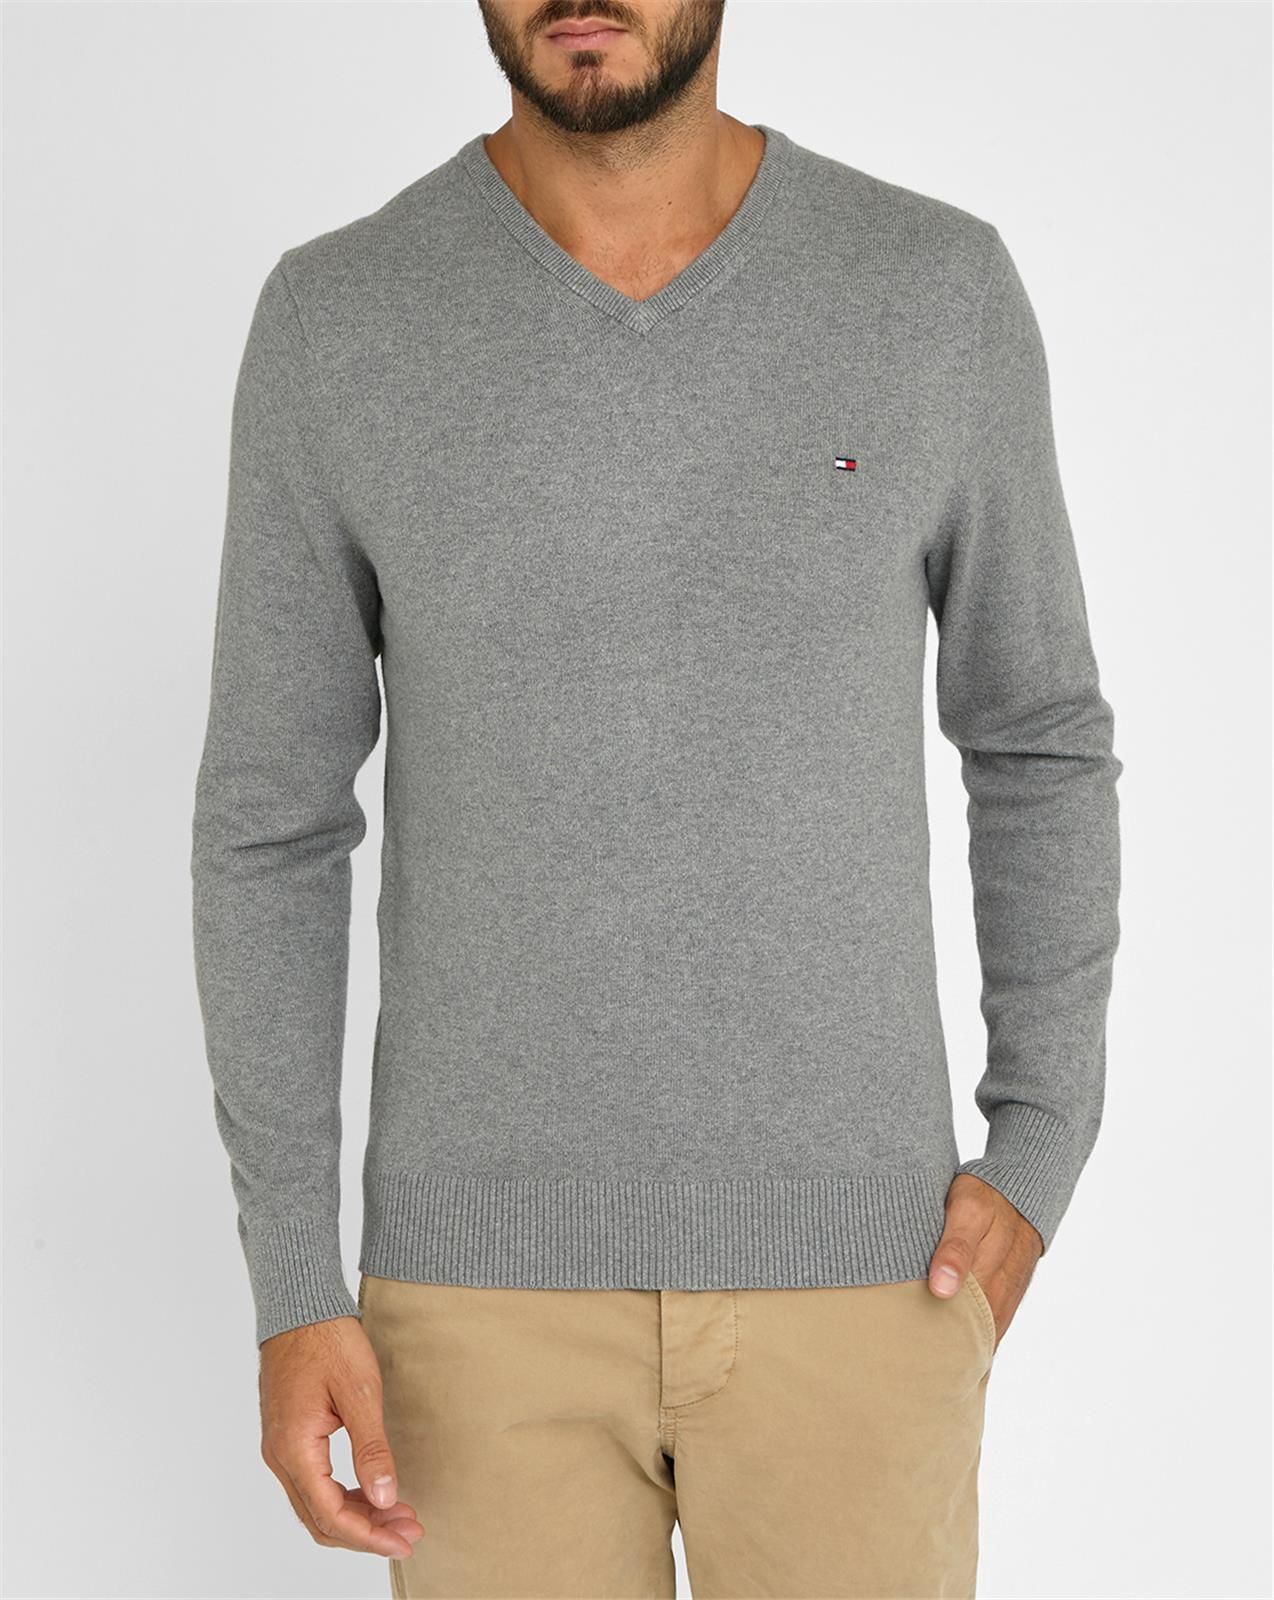 Tommy hilfiger Grey Cotton, Wool And Cashmere V-neck Sweater in Gray ...